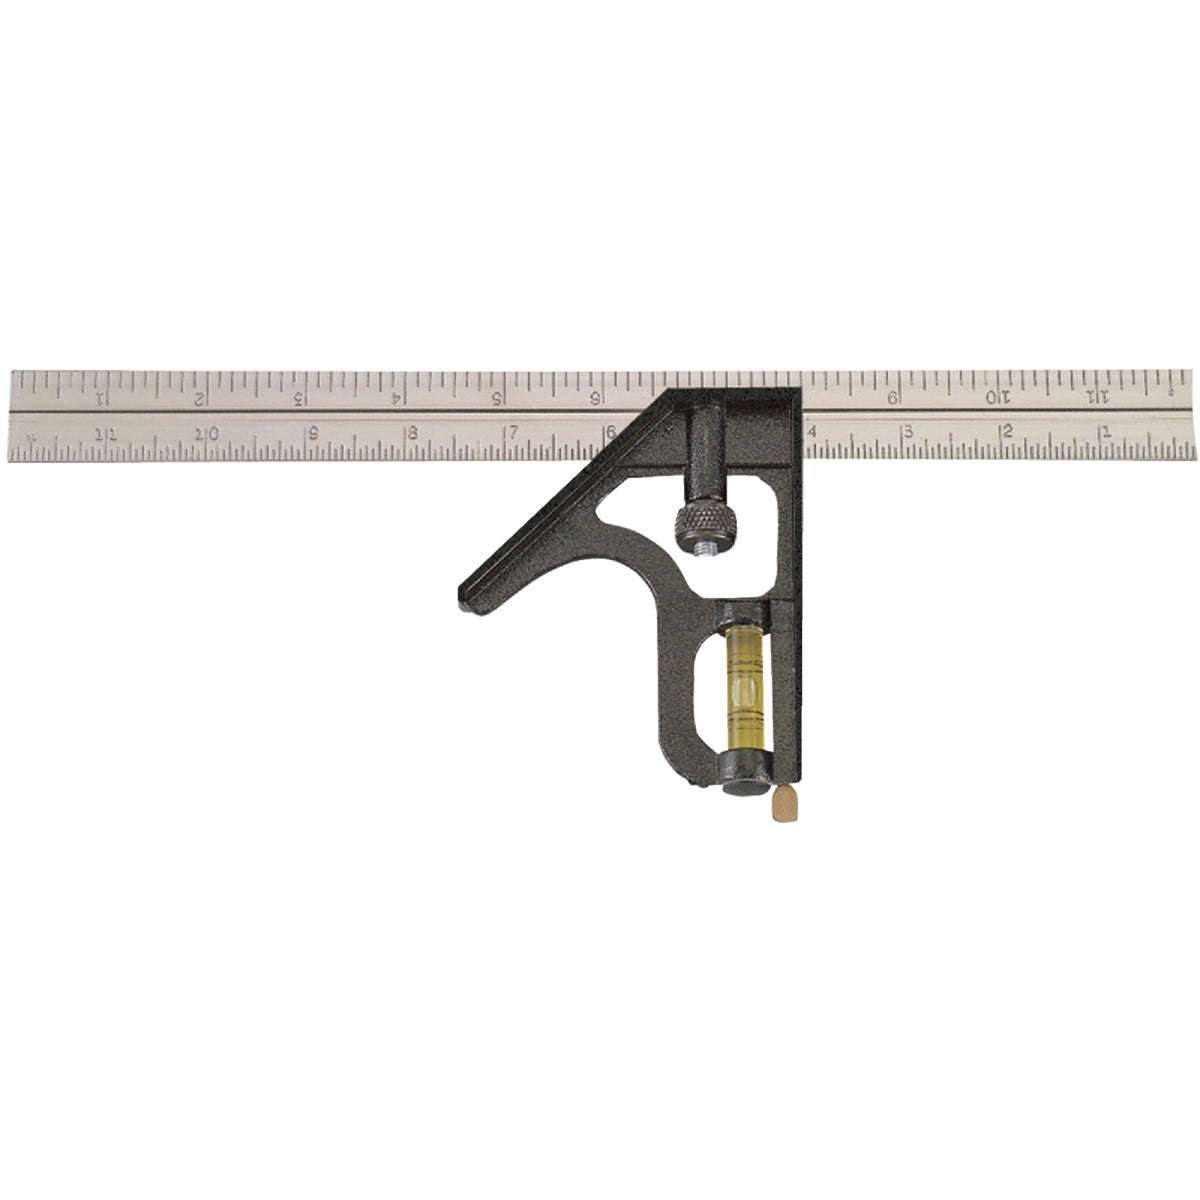 "12"" METRIC COMBO SQUARE - 400EM by Johnson Level & Tool"